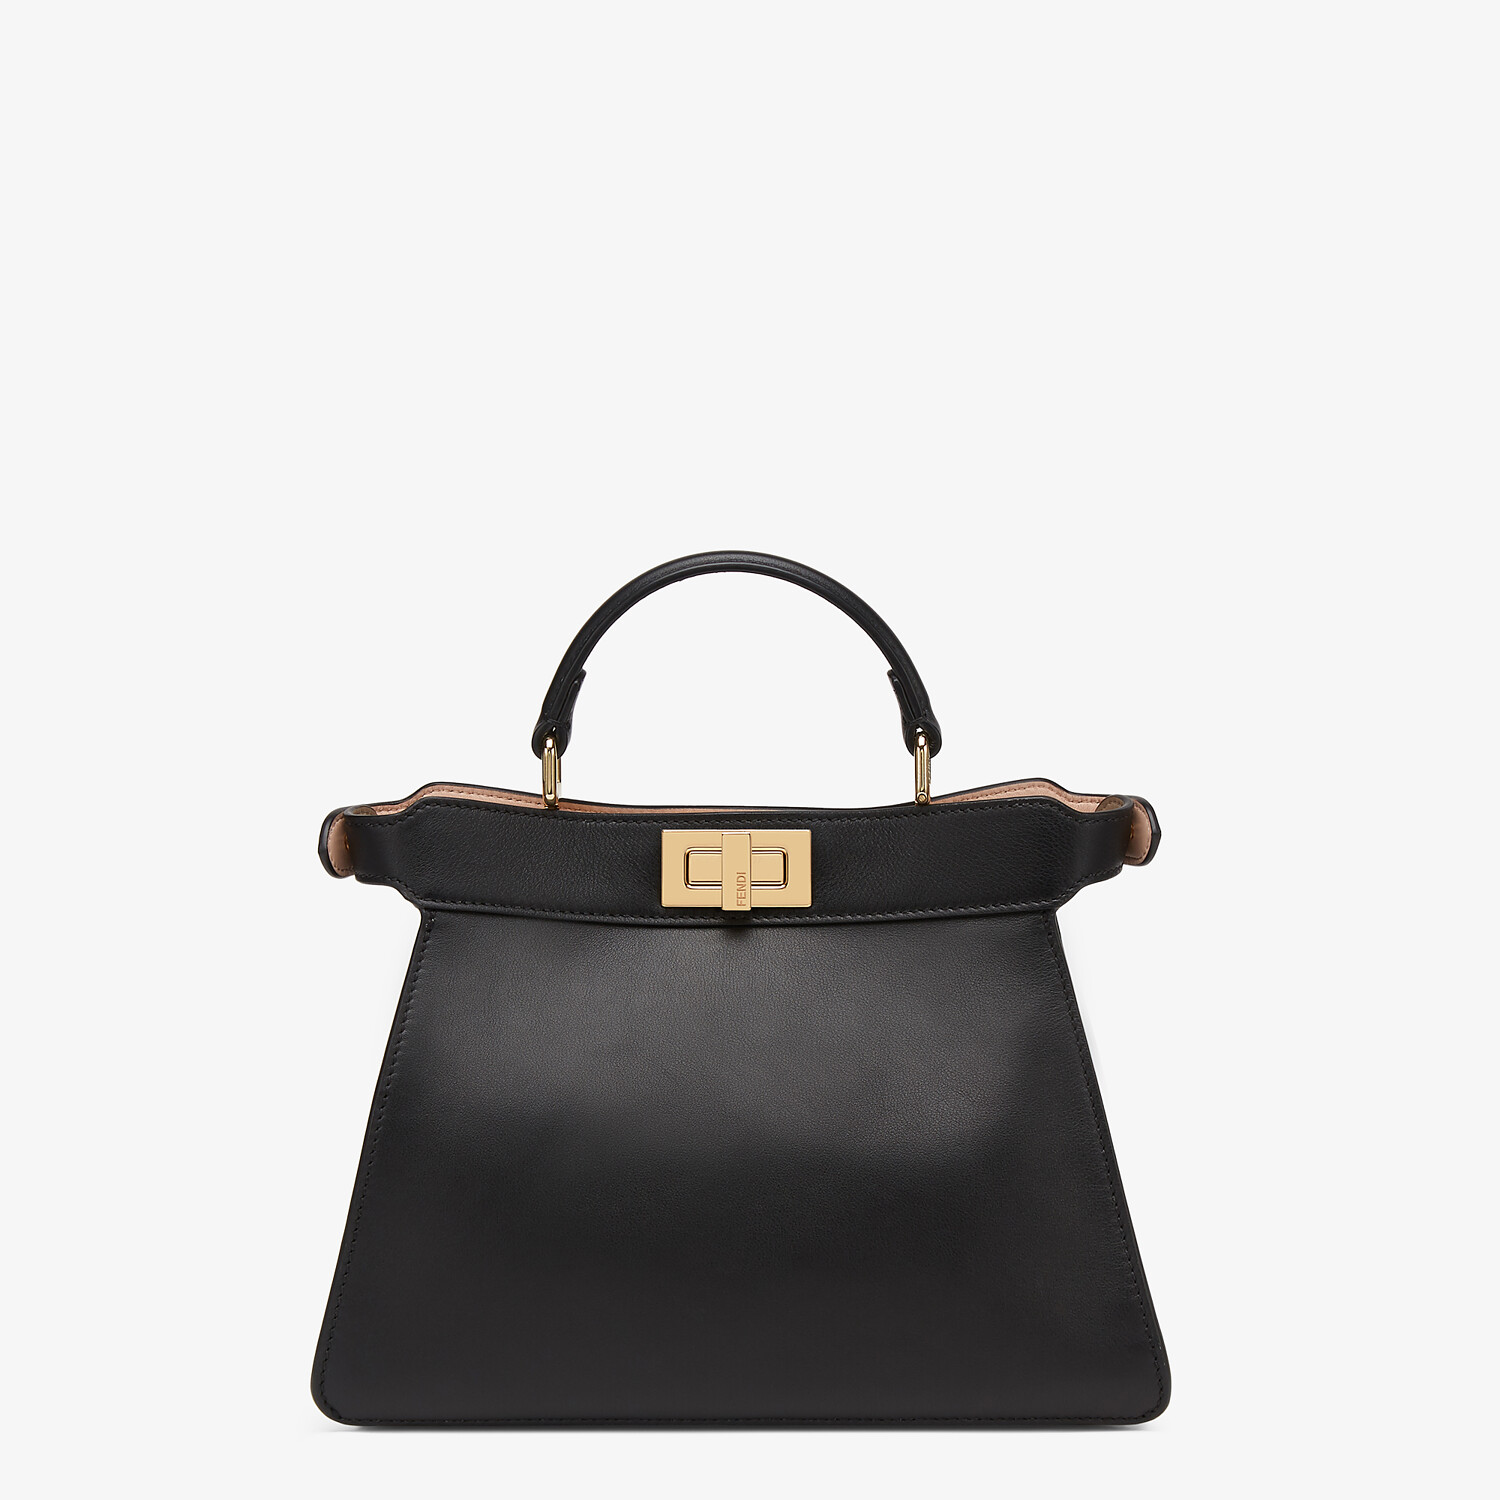 FENDI PEEKABOO ISEEU SMALL - Black leather bag - view 4 detail